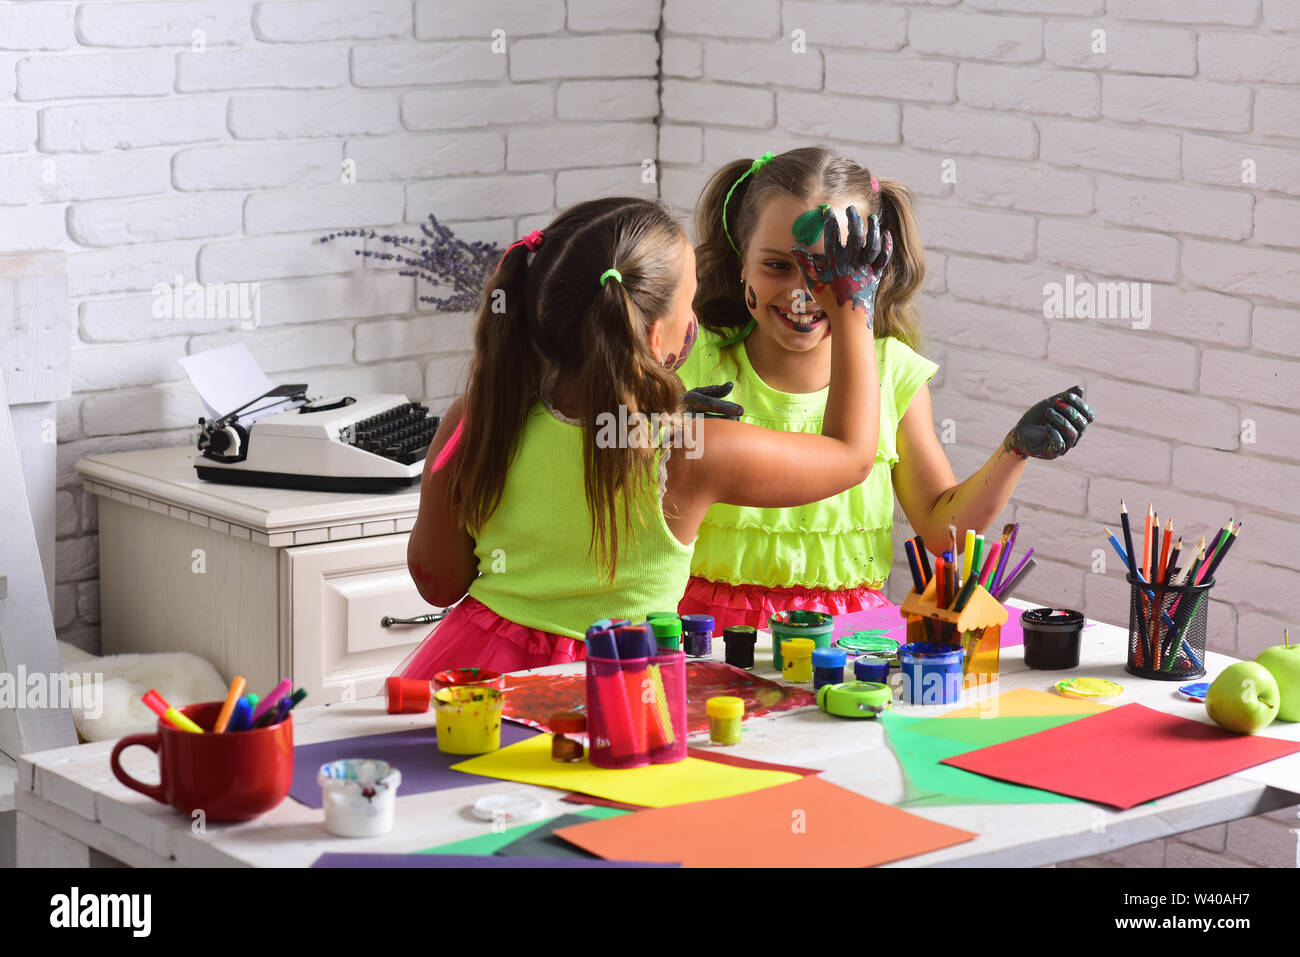 Body Art And Painting Girls Drawing On Face Skin With Paints Kids Learning And Playing Children Artists With Painted Hands Imagination Creativity Stock Photo Alamy